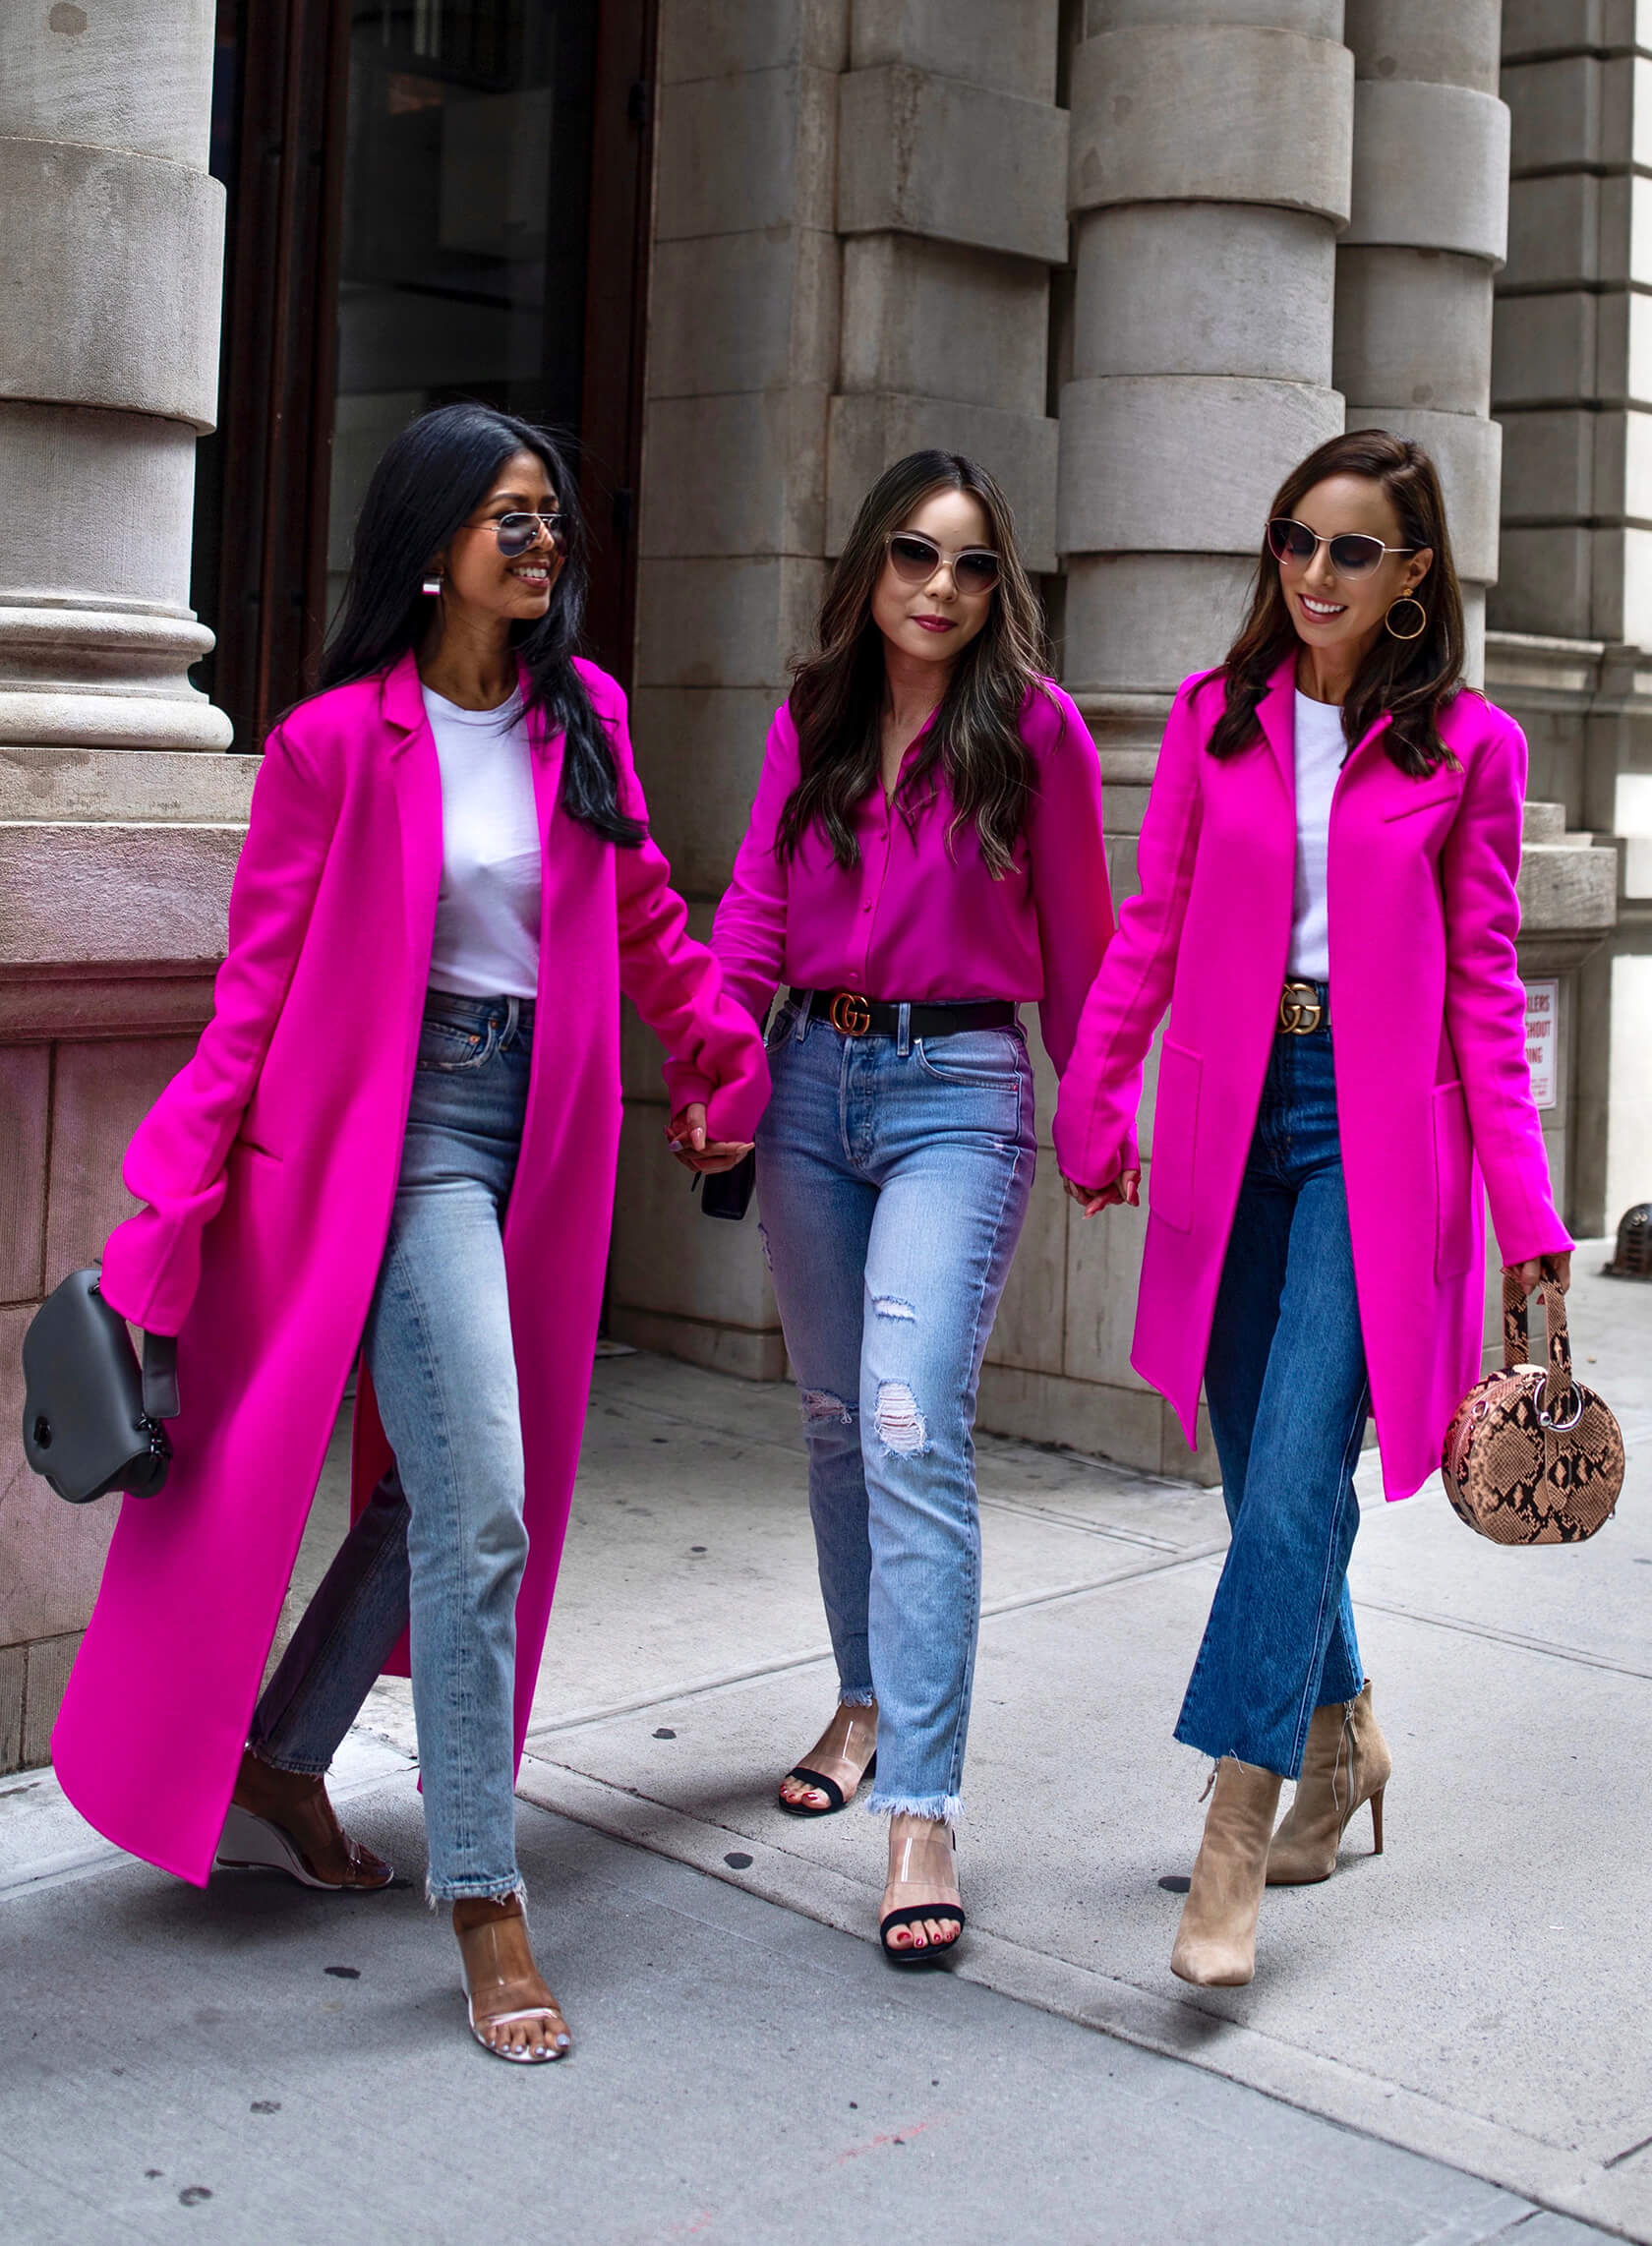 Sydne Style shows how to wear hot pink in casual outfit ideas with jeans with walk in wonderland and haute pink pretty